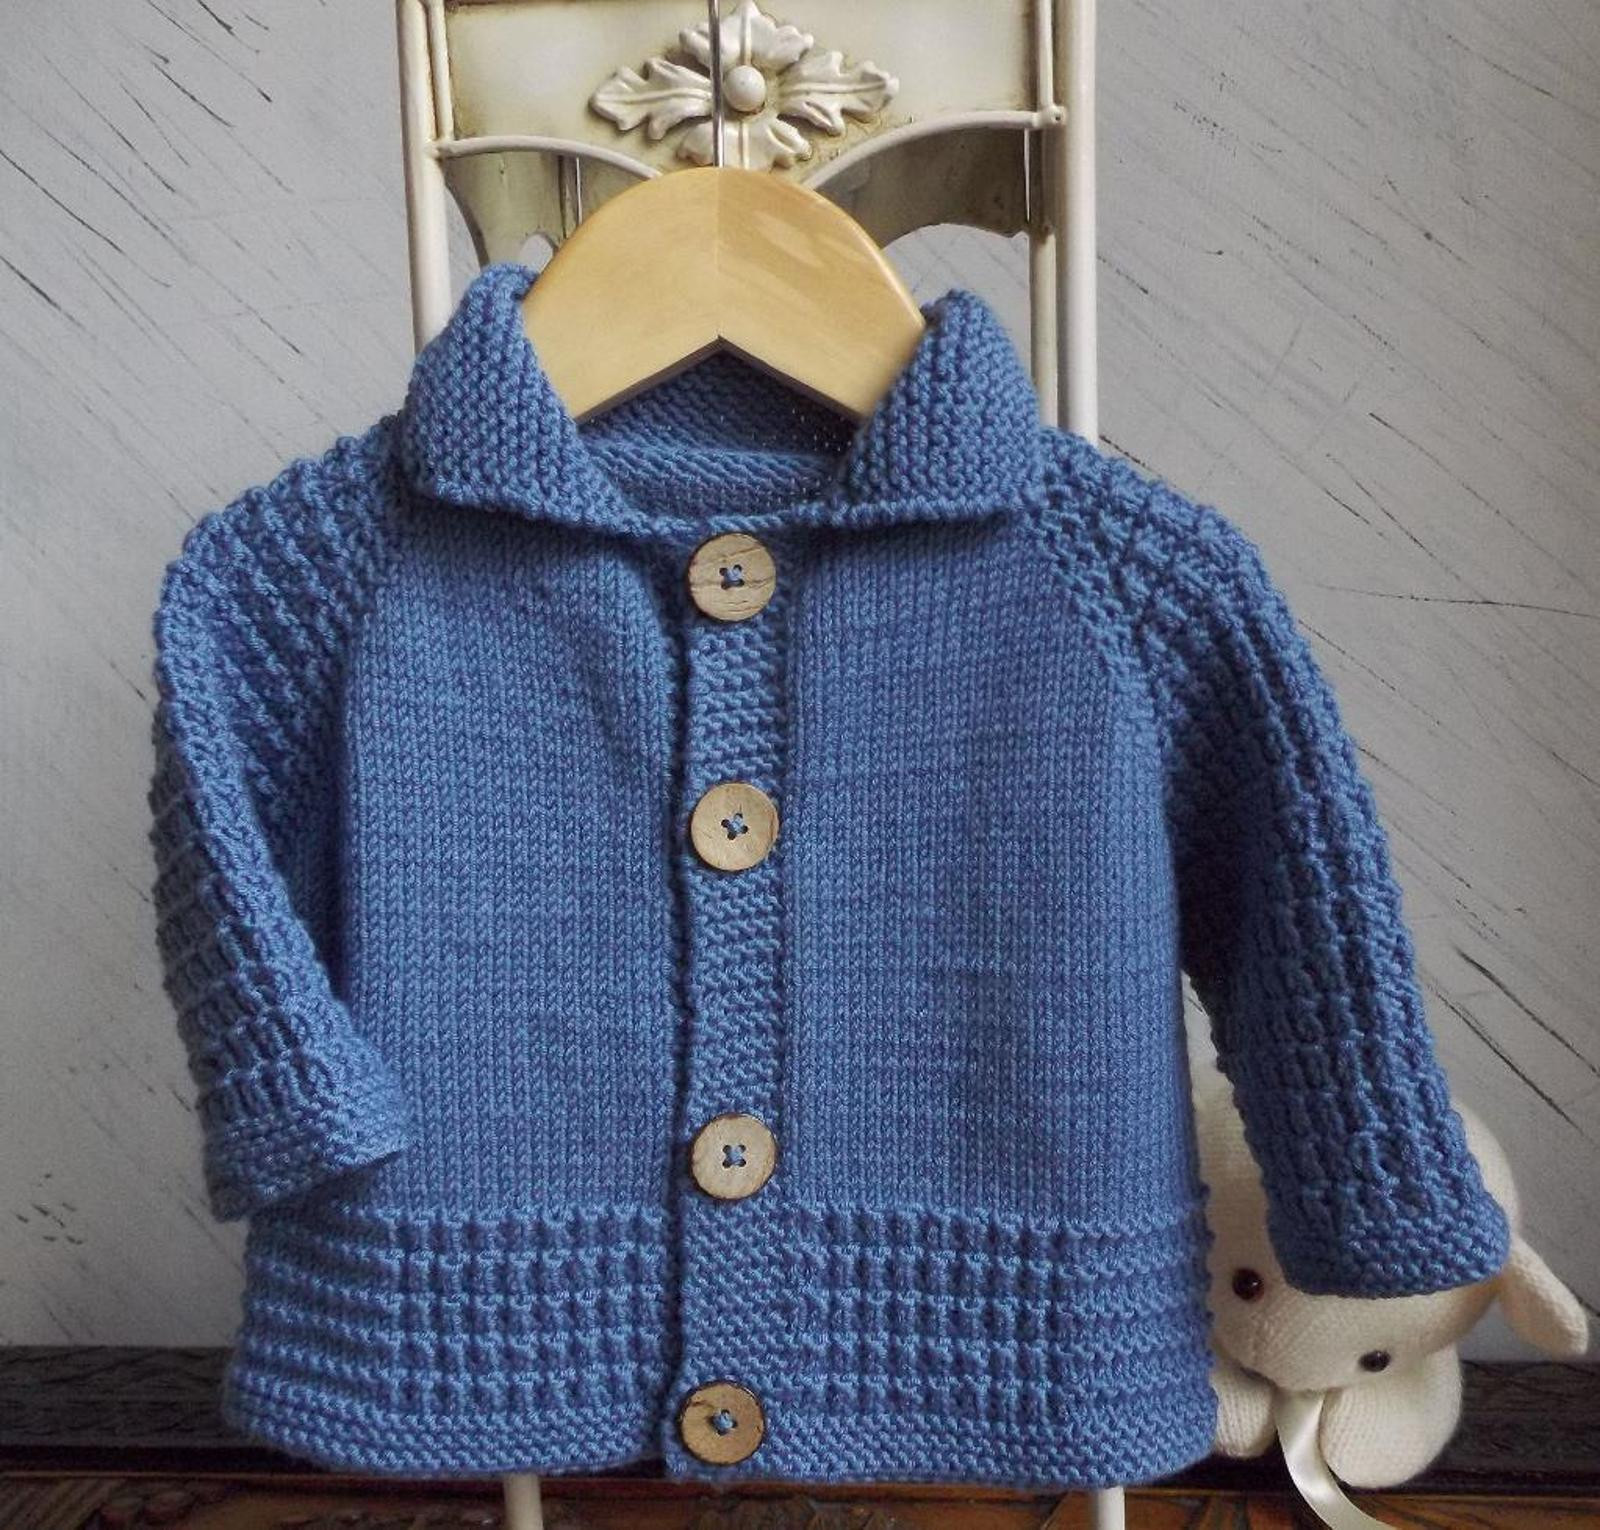 Fresh top Down Baby Sweater Knitting Patterns Easier to Adjust Cardigan Knitting Pattern Of Brilliant 44 Images Cardigan Knitting Pattern